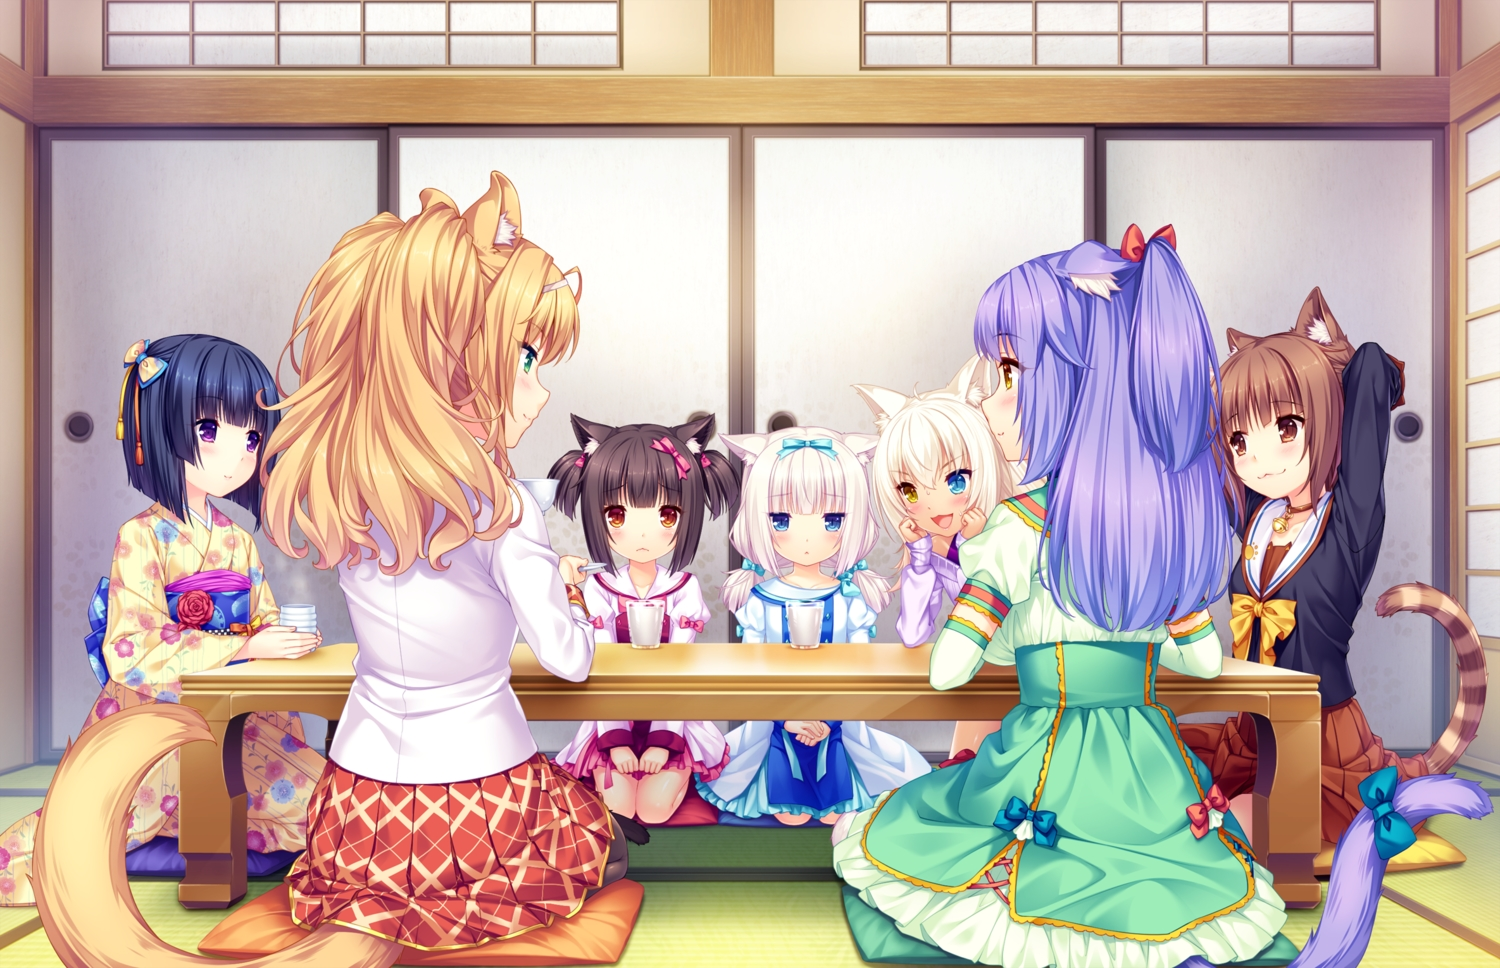 animal_ears azuki_(sayori) bicolored_eyes black_hair blonde_hair blue_eyes brown_eyes brown_hair catgirl cat_smile chocola_(sayori) cinnamon_(sayori) coconut_(sayori) game_cg green_eyes group japanese_clothes kimono loli long_hair maple_(sayori) minazuki_shigure nekopara neko_works orange_hair purple_eyes purple_hair sayori seifuku short_hair tail vanilla_(sayori) white_hair yellow_eyes